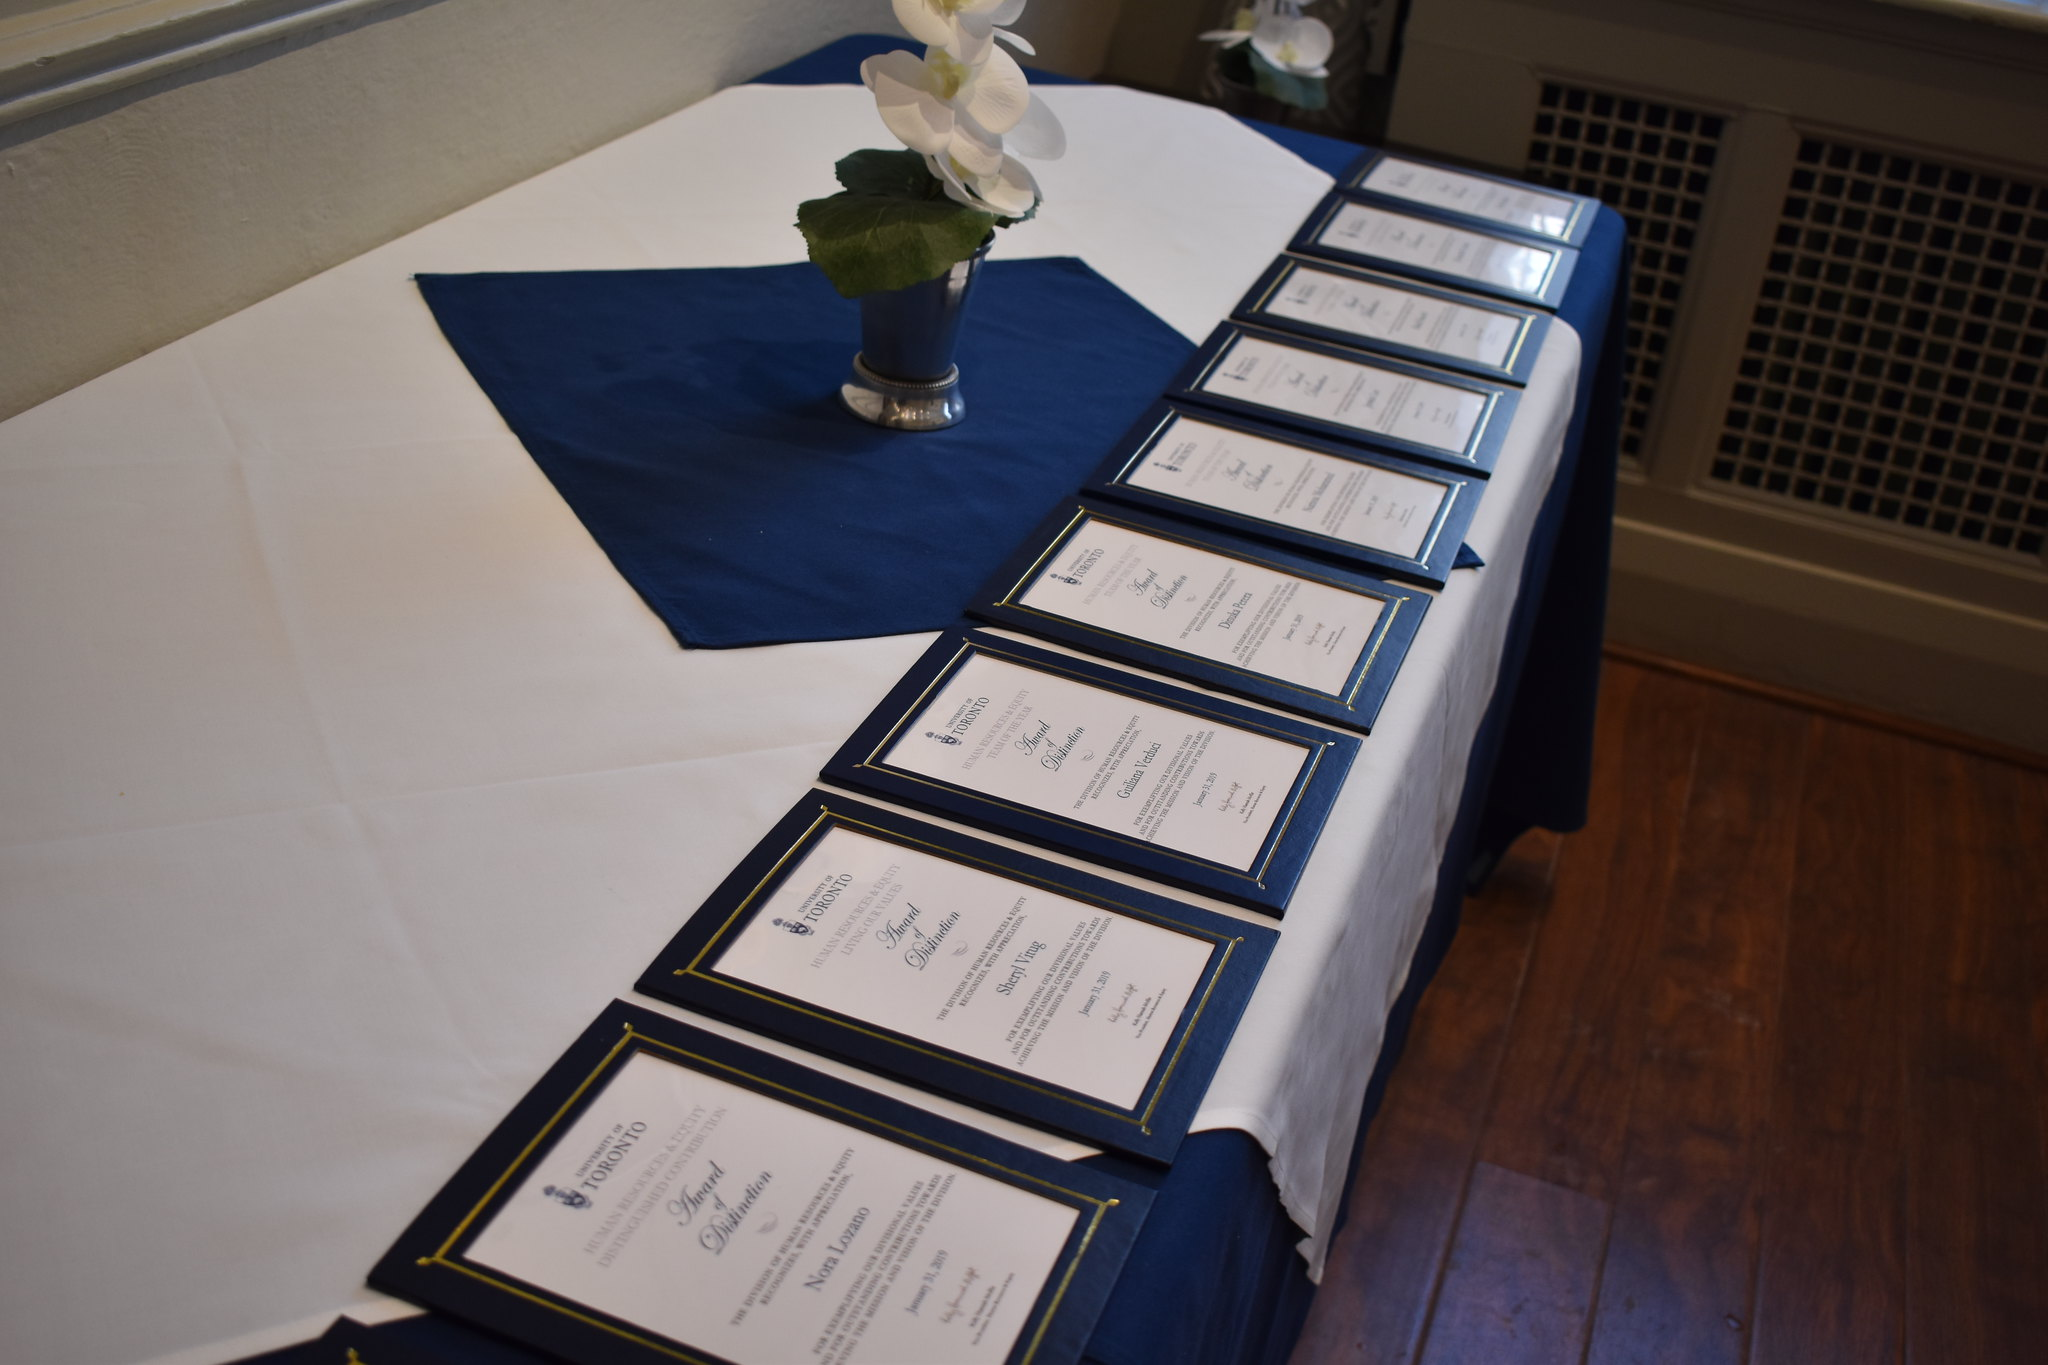 framed award certificates in a row on a table